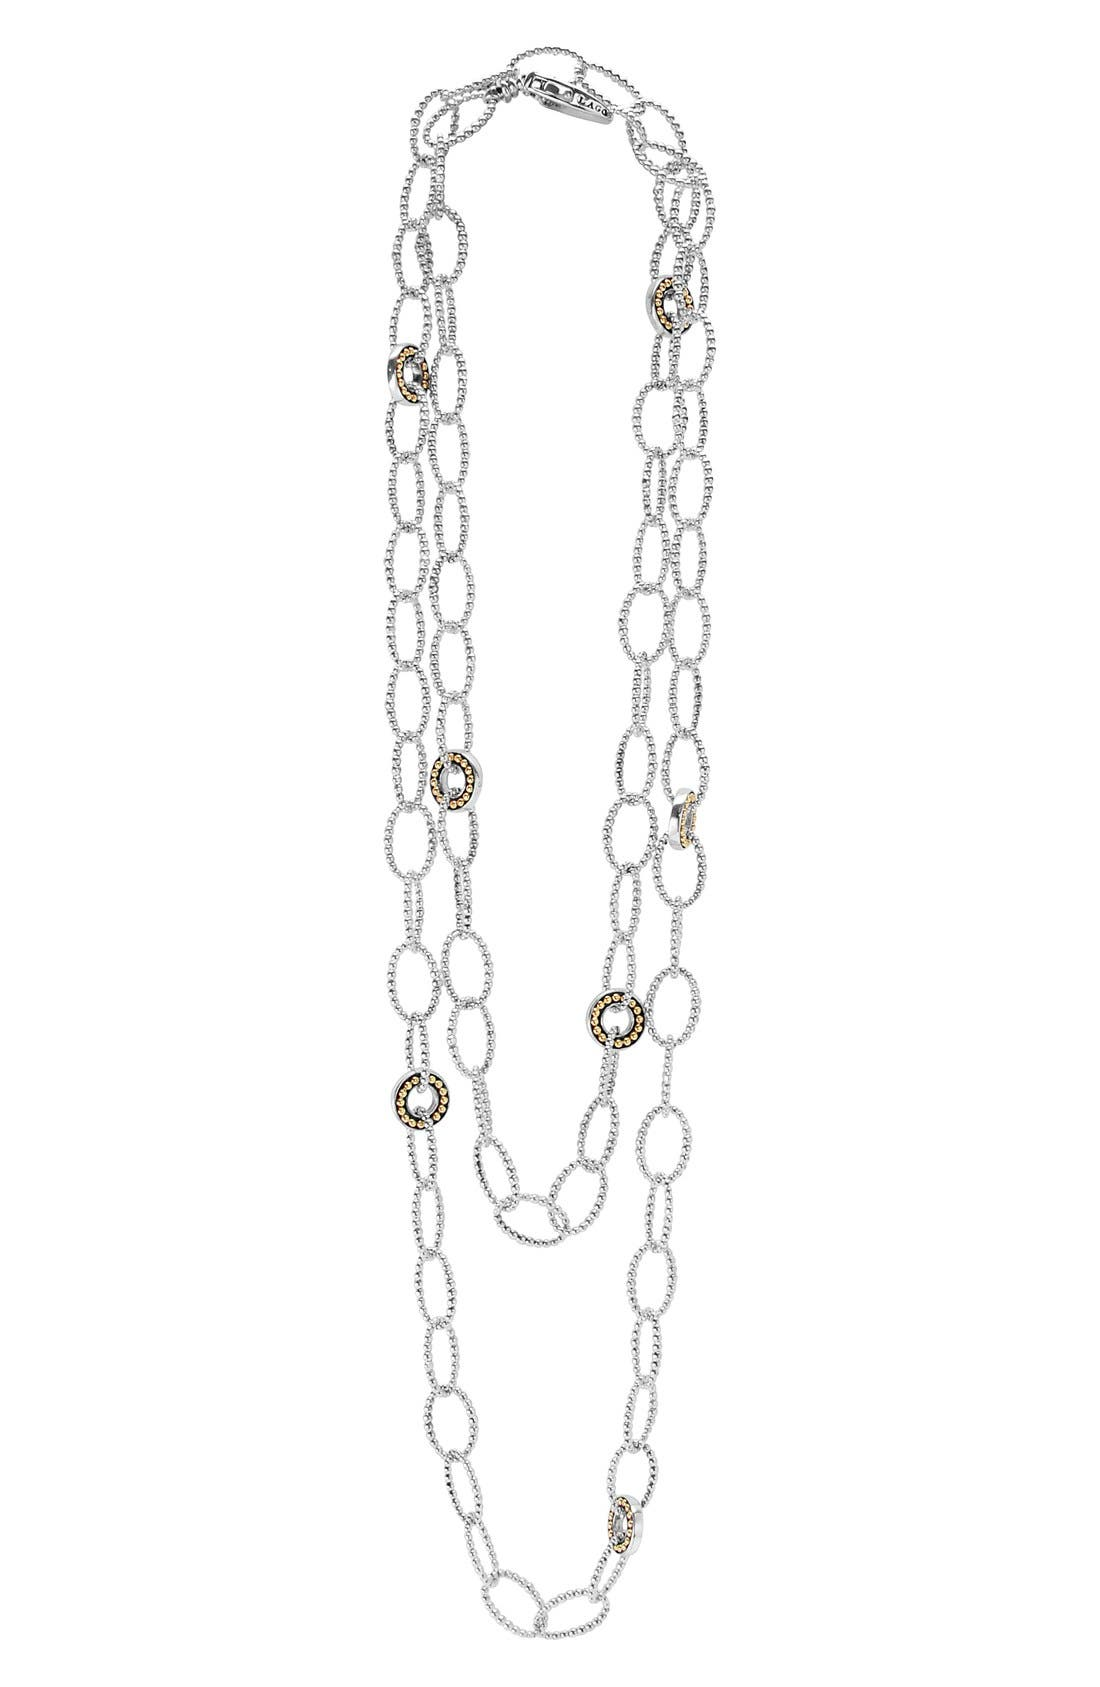 'Enso' Long Station Necklace,                             Main thumbnail 1, color,                             SILVER/ GOLD